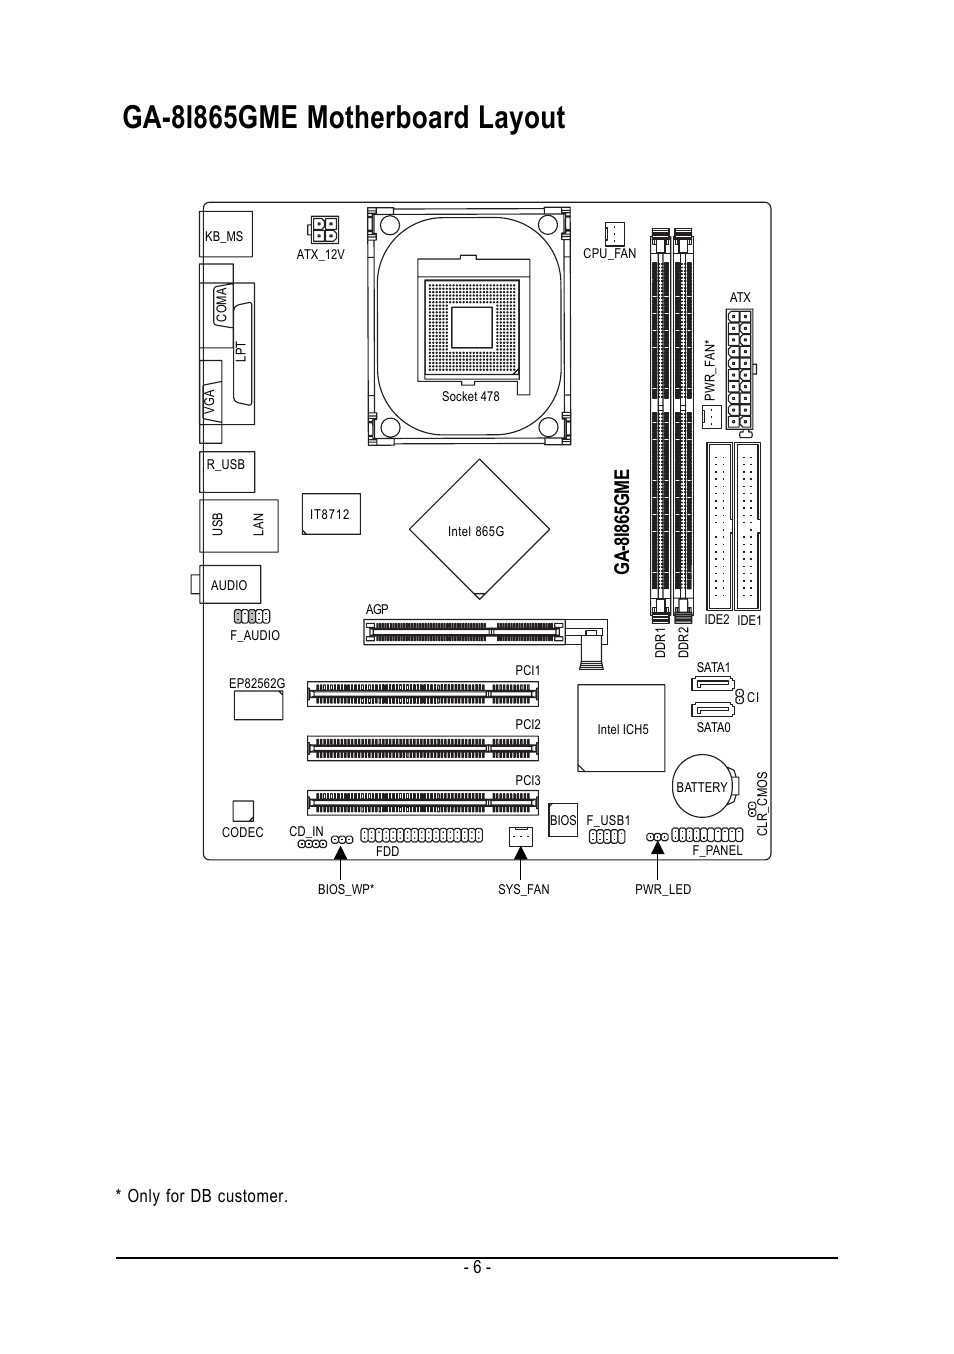 Ga-8i865gme motherboard layout, Ga-8i865gme, Only for db